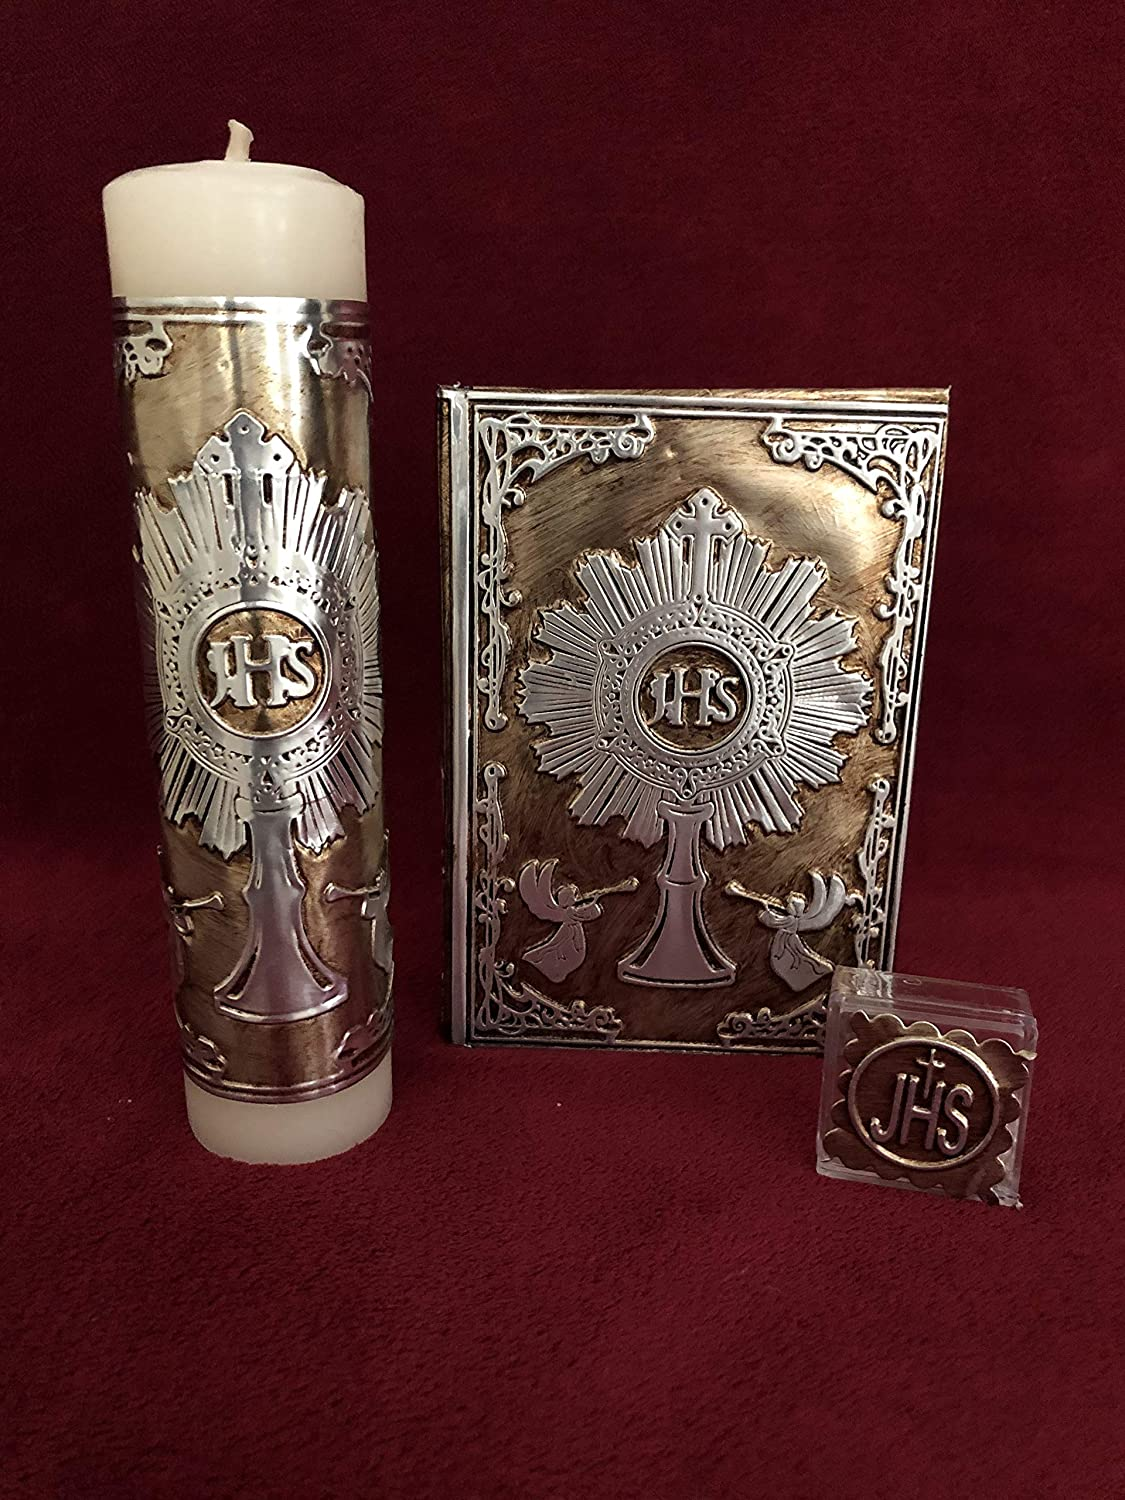 First Holy Communion Laminated Chalice With Angels/Estuche Para Primera Comunión